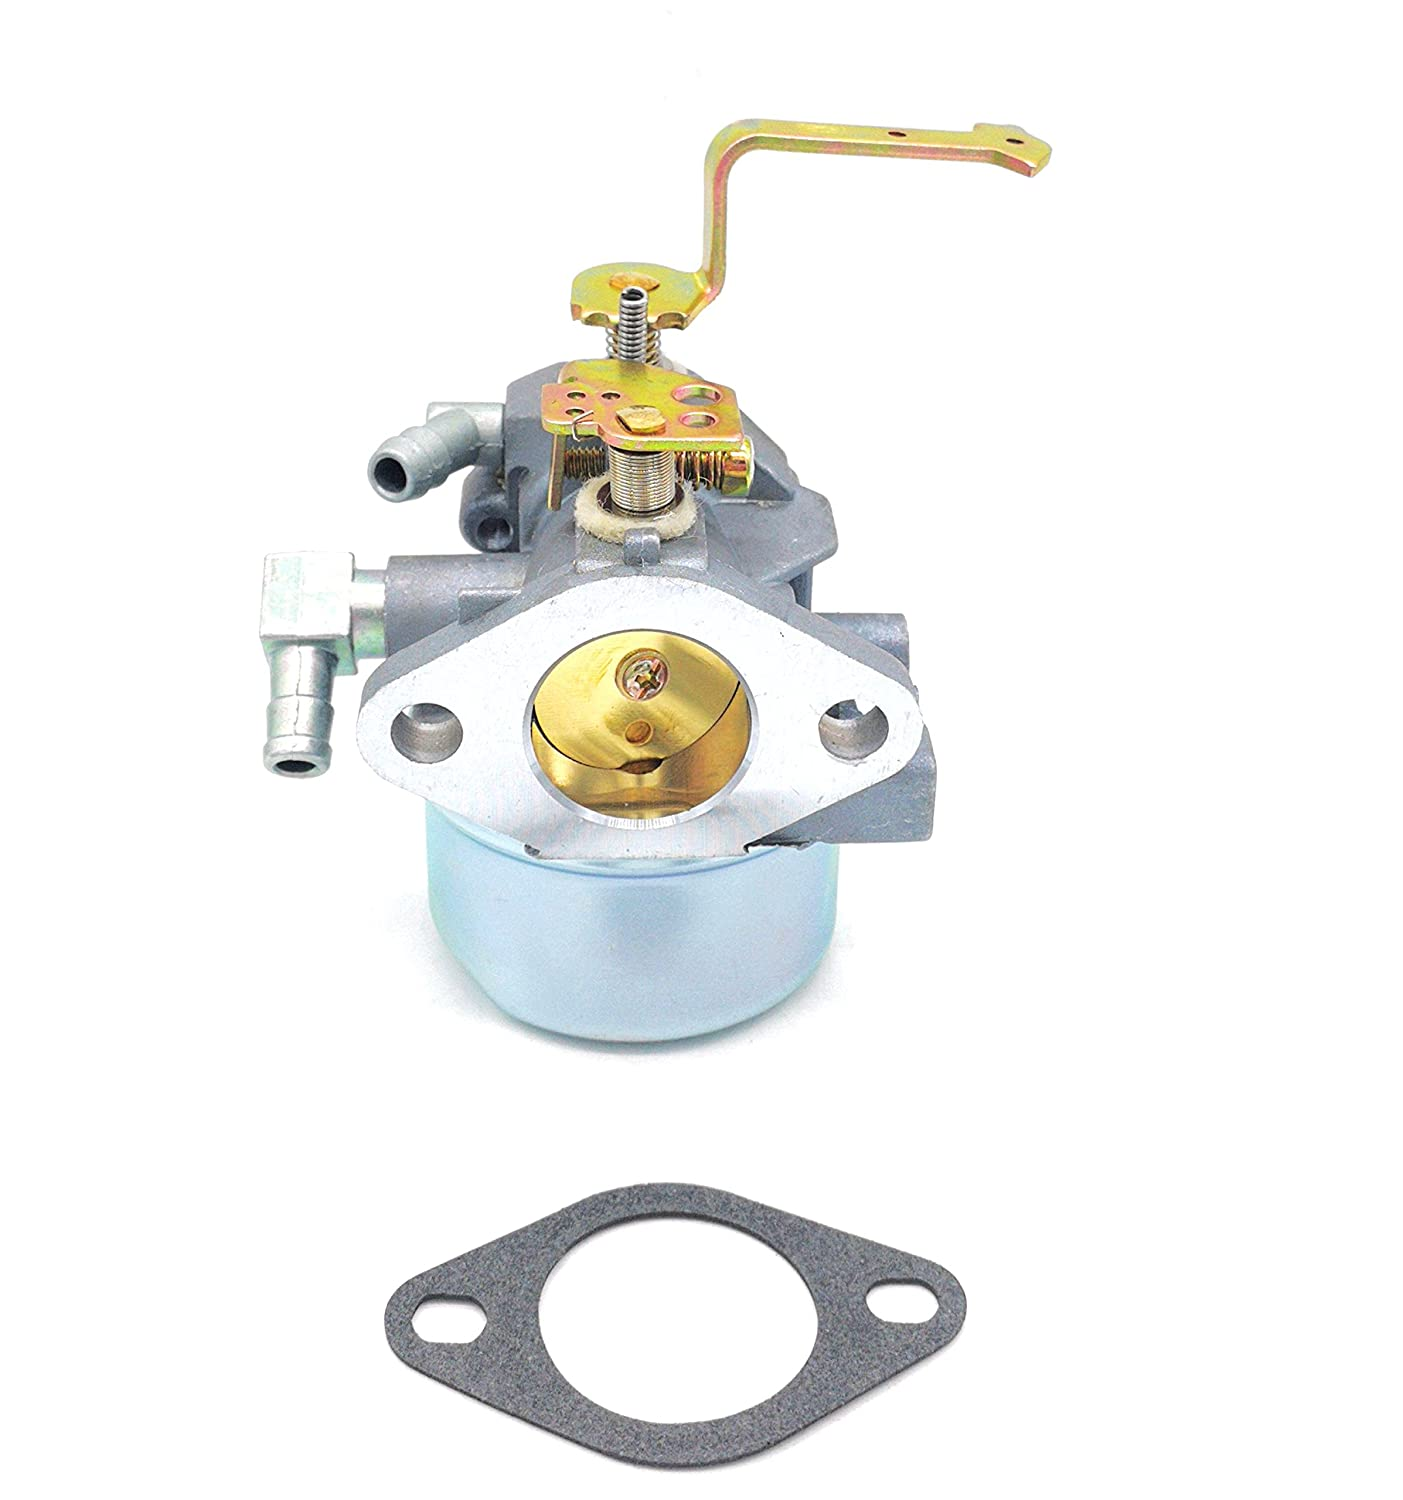 Loofu Carburetor Carb for Tecumseh 640152A HM80 HM90 HM100 8-10 HP Generator Engines